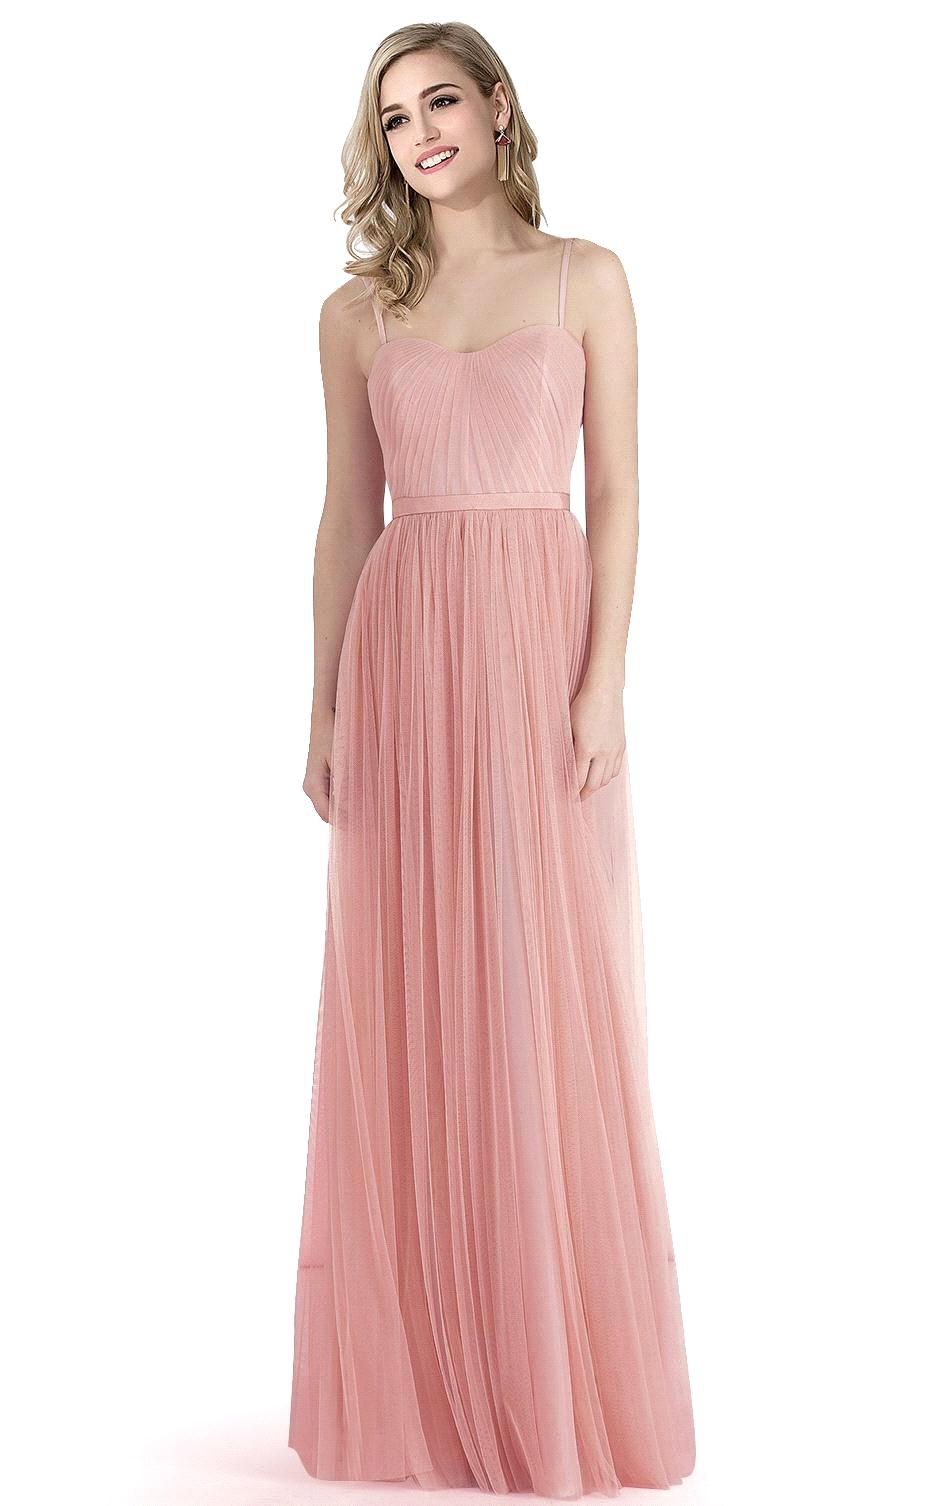 Bridesmaid Dresses Under 50 In Usa Fashion Dresses